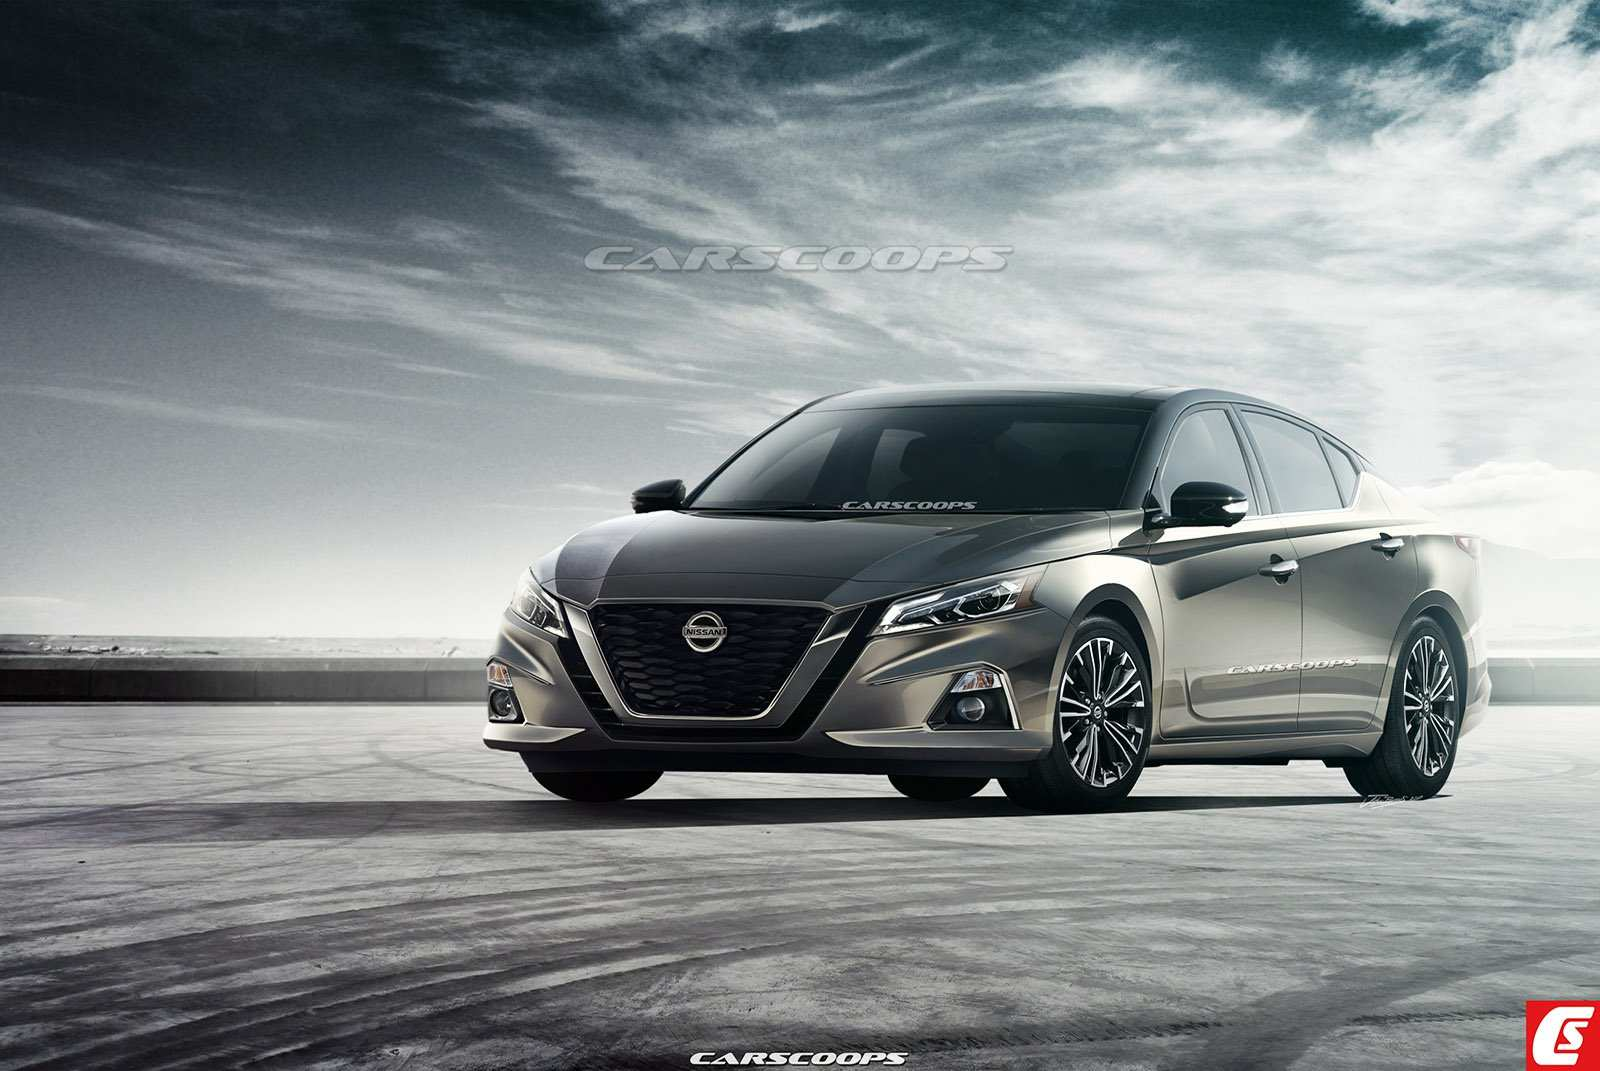 94 All New 2019 Nissan Altima Rendering Redesign And Concept